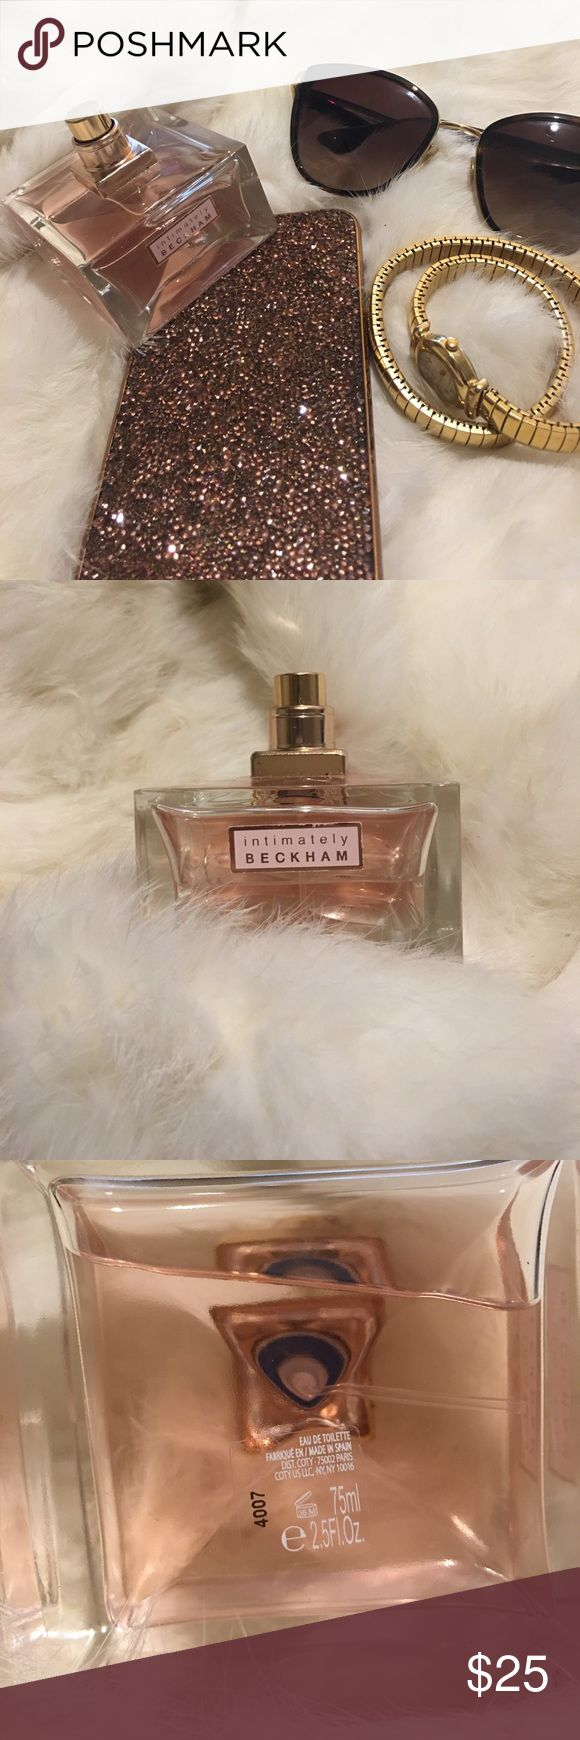 Victoria Beckham Intimately Beckham Perfume 2.5fl Preowned good condition, authentic, damage on bottle, missing cap and no box. Full size 2.5fl. oz bottle. It is a Eau De Toilette. Please read description, comments, see pictures and ask questions before purchase. Check out my other items, and bundle to save! Victoria Beckham Accessories